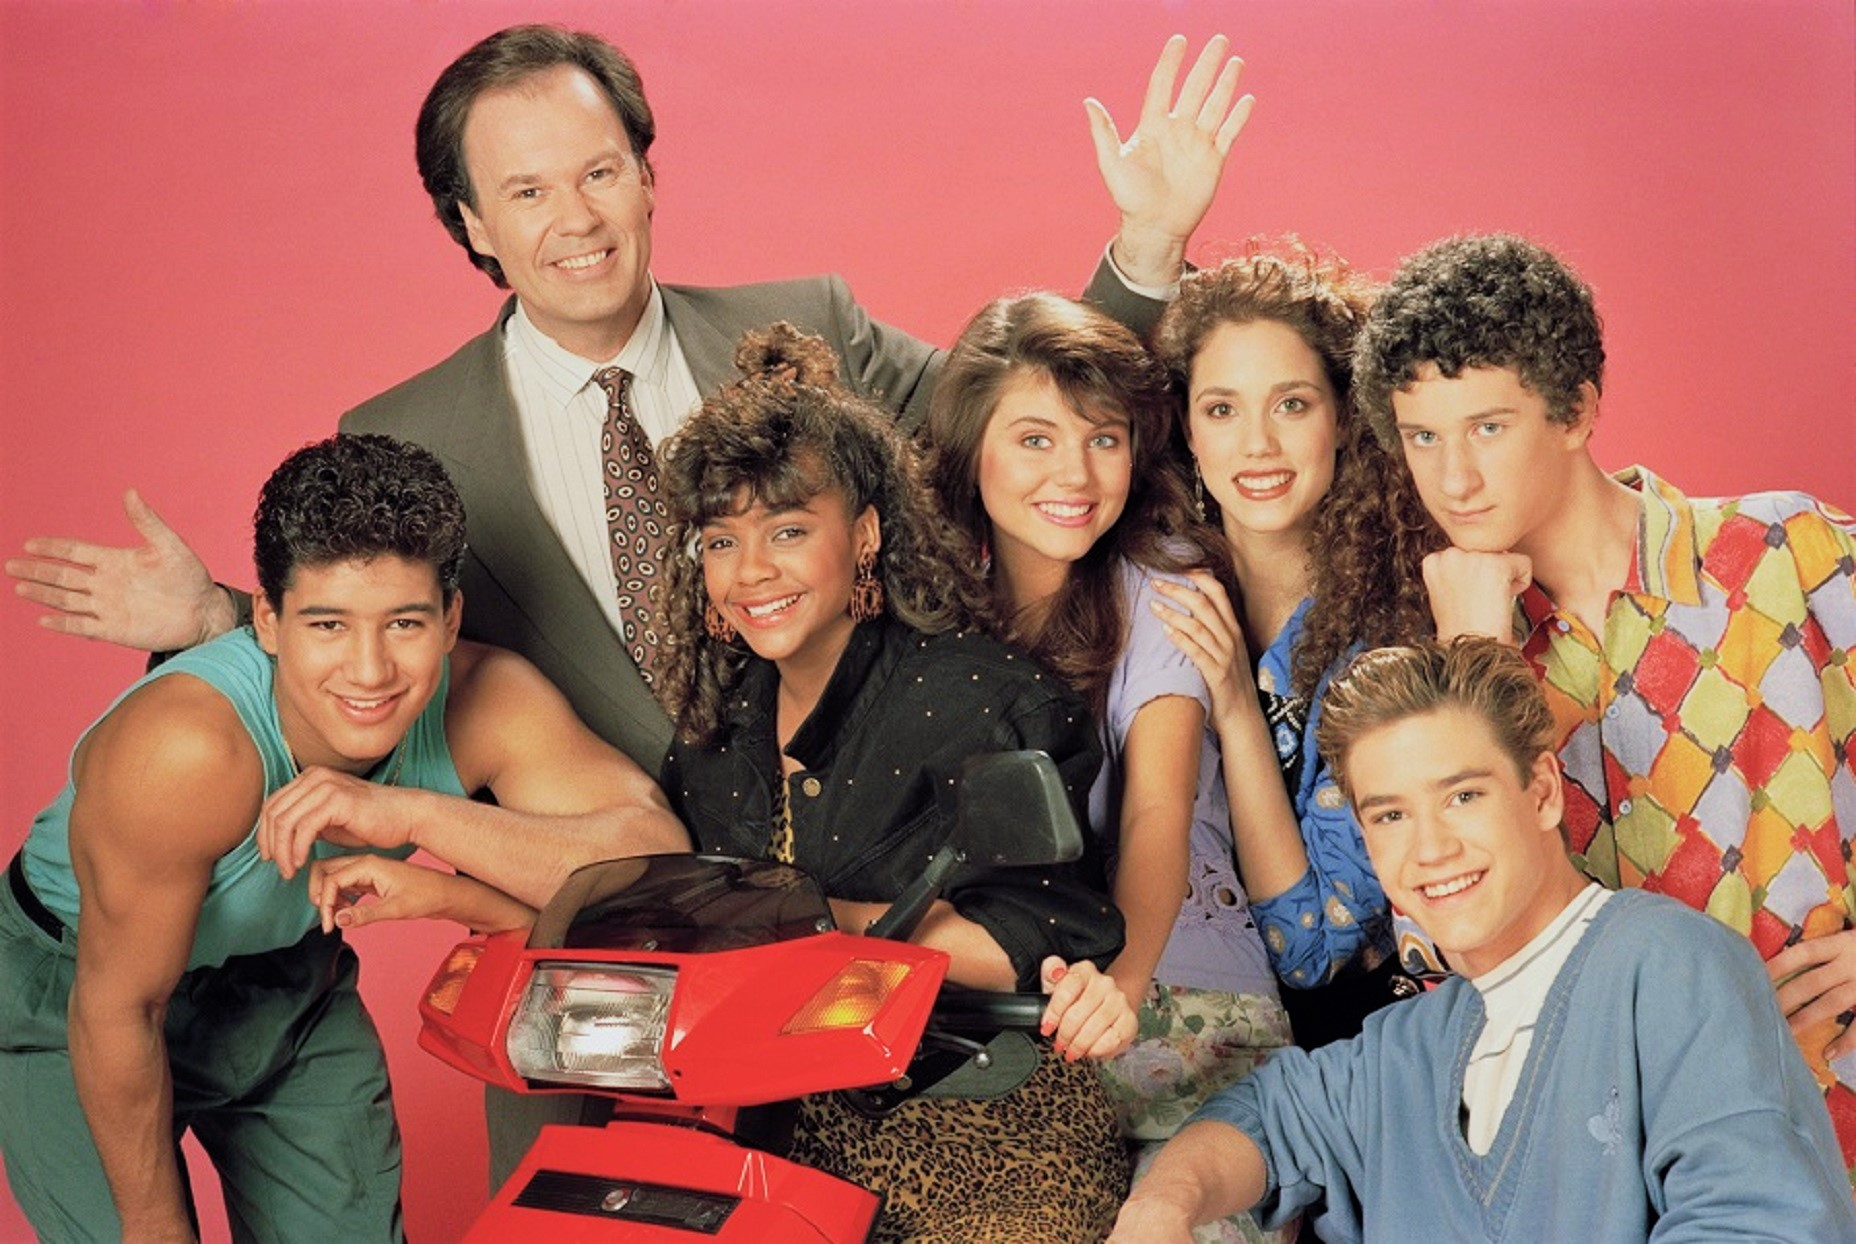 Saved by the Bell Cast Pink Background